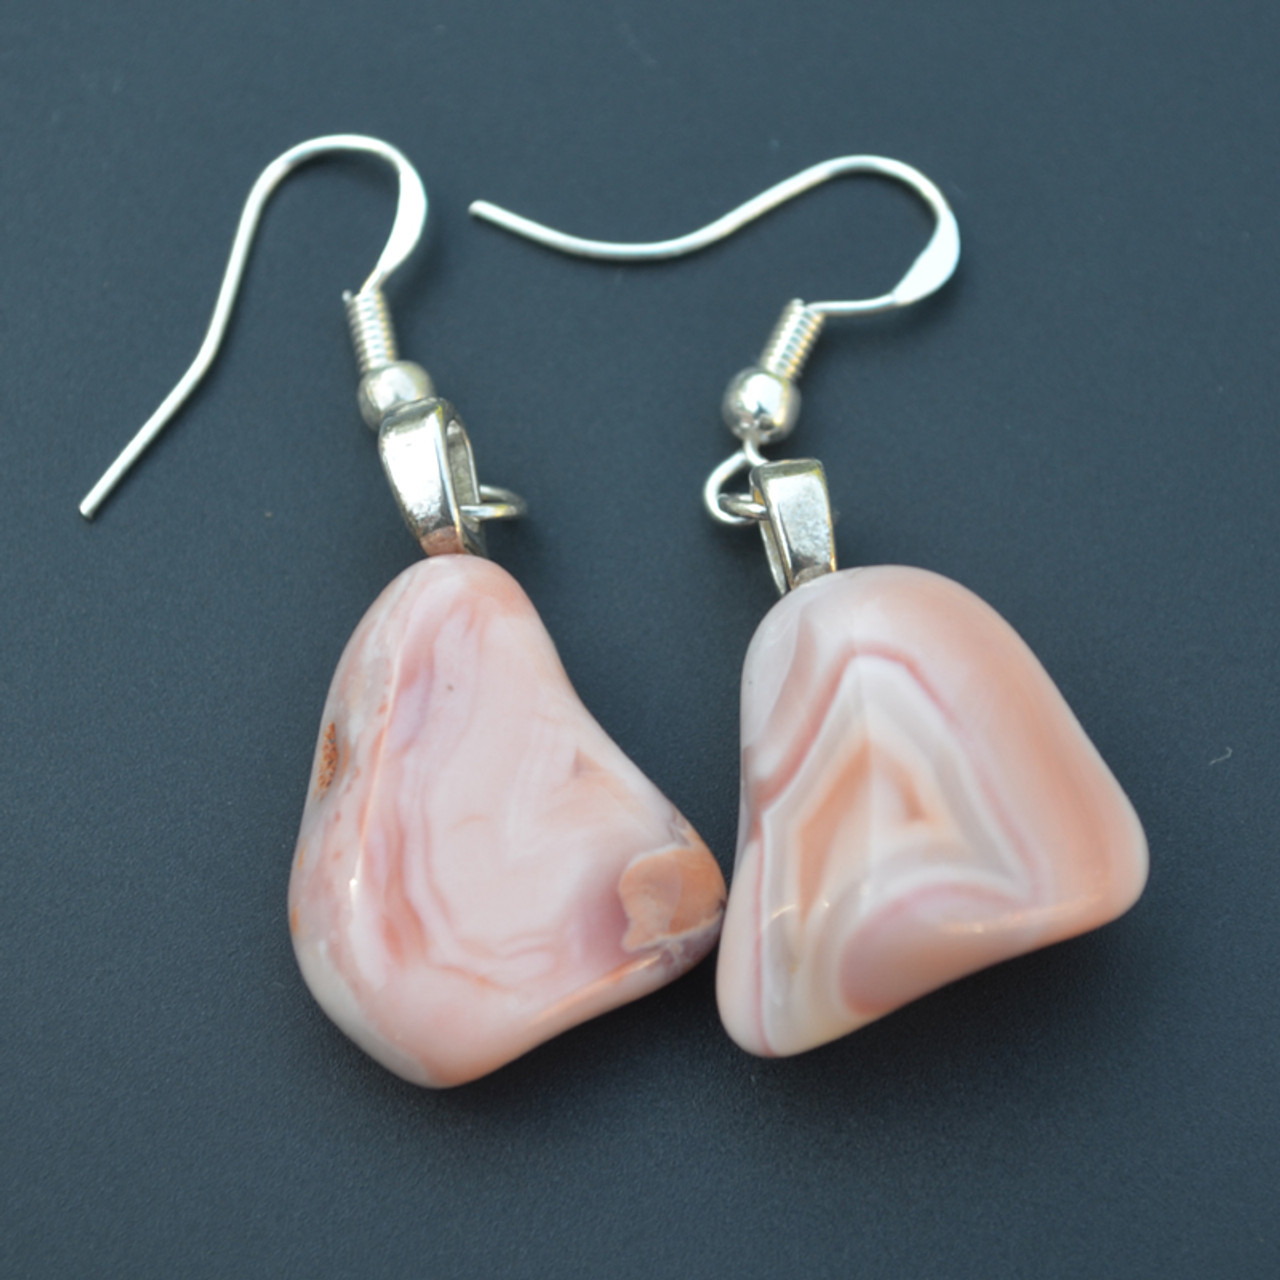 Tumbled Pink Botswana Agate Dangling Earrings - 1 Set - Made to Order